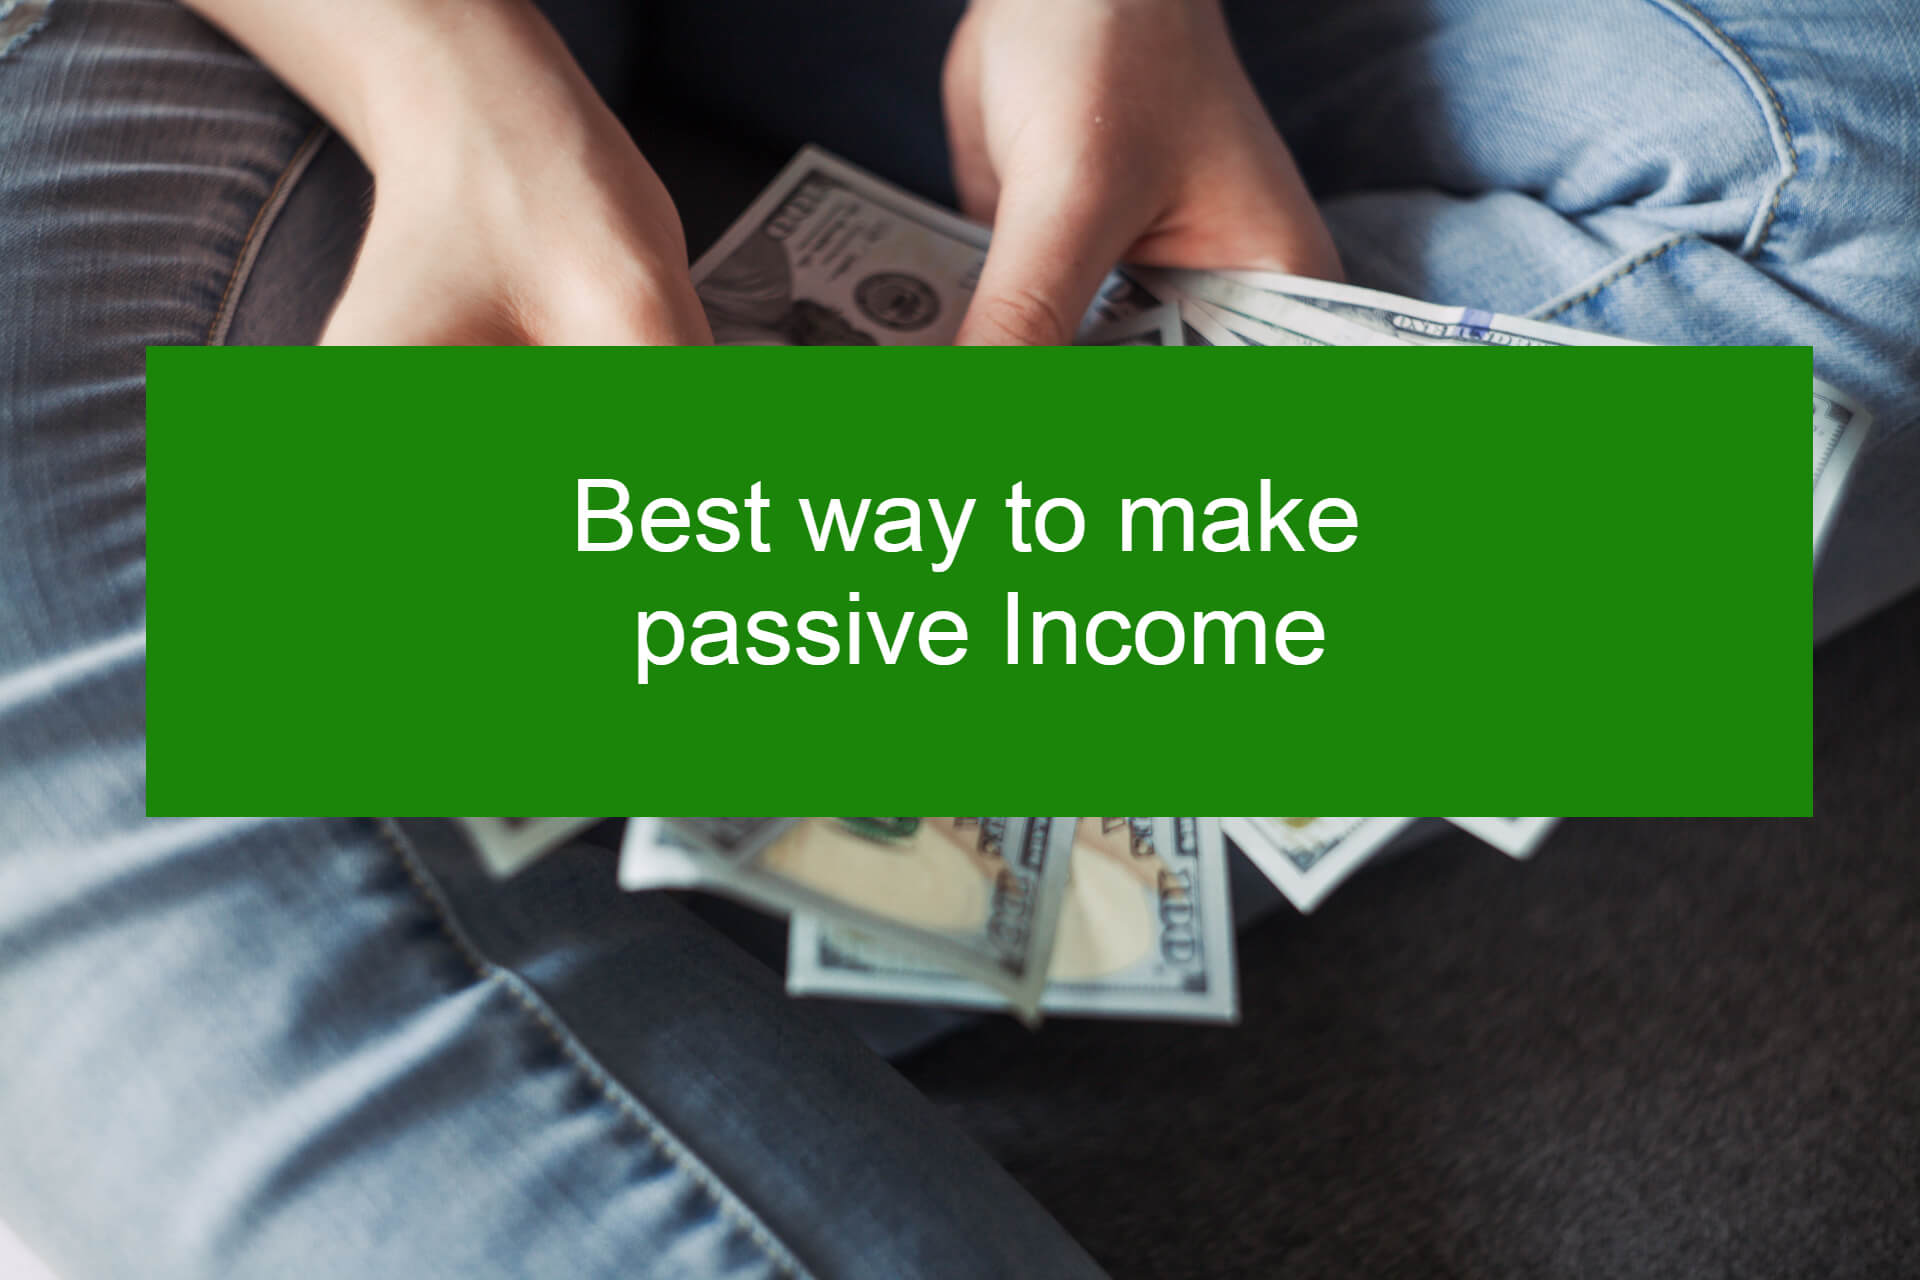 Best Way to Make passive income